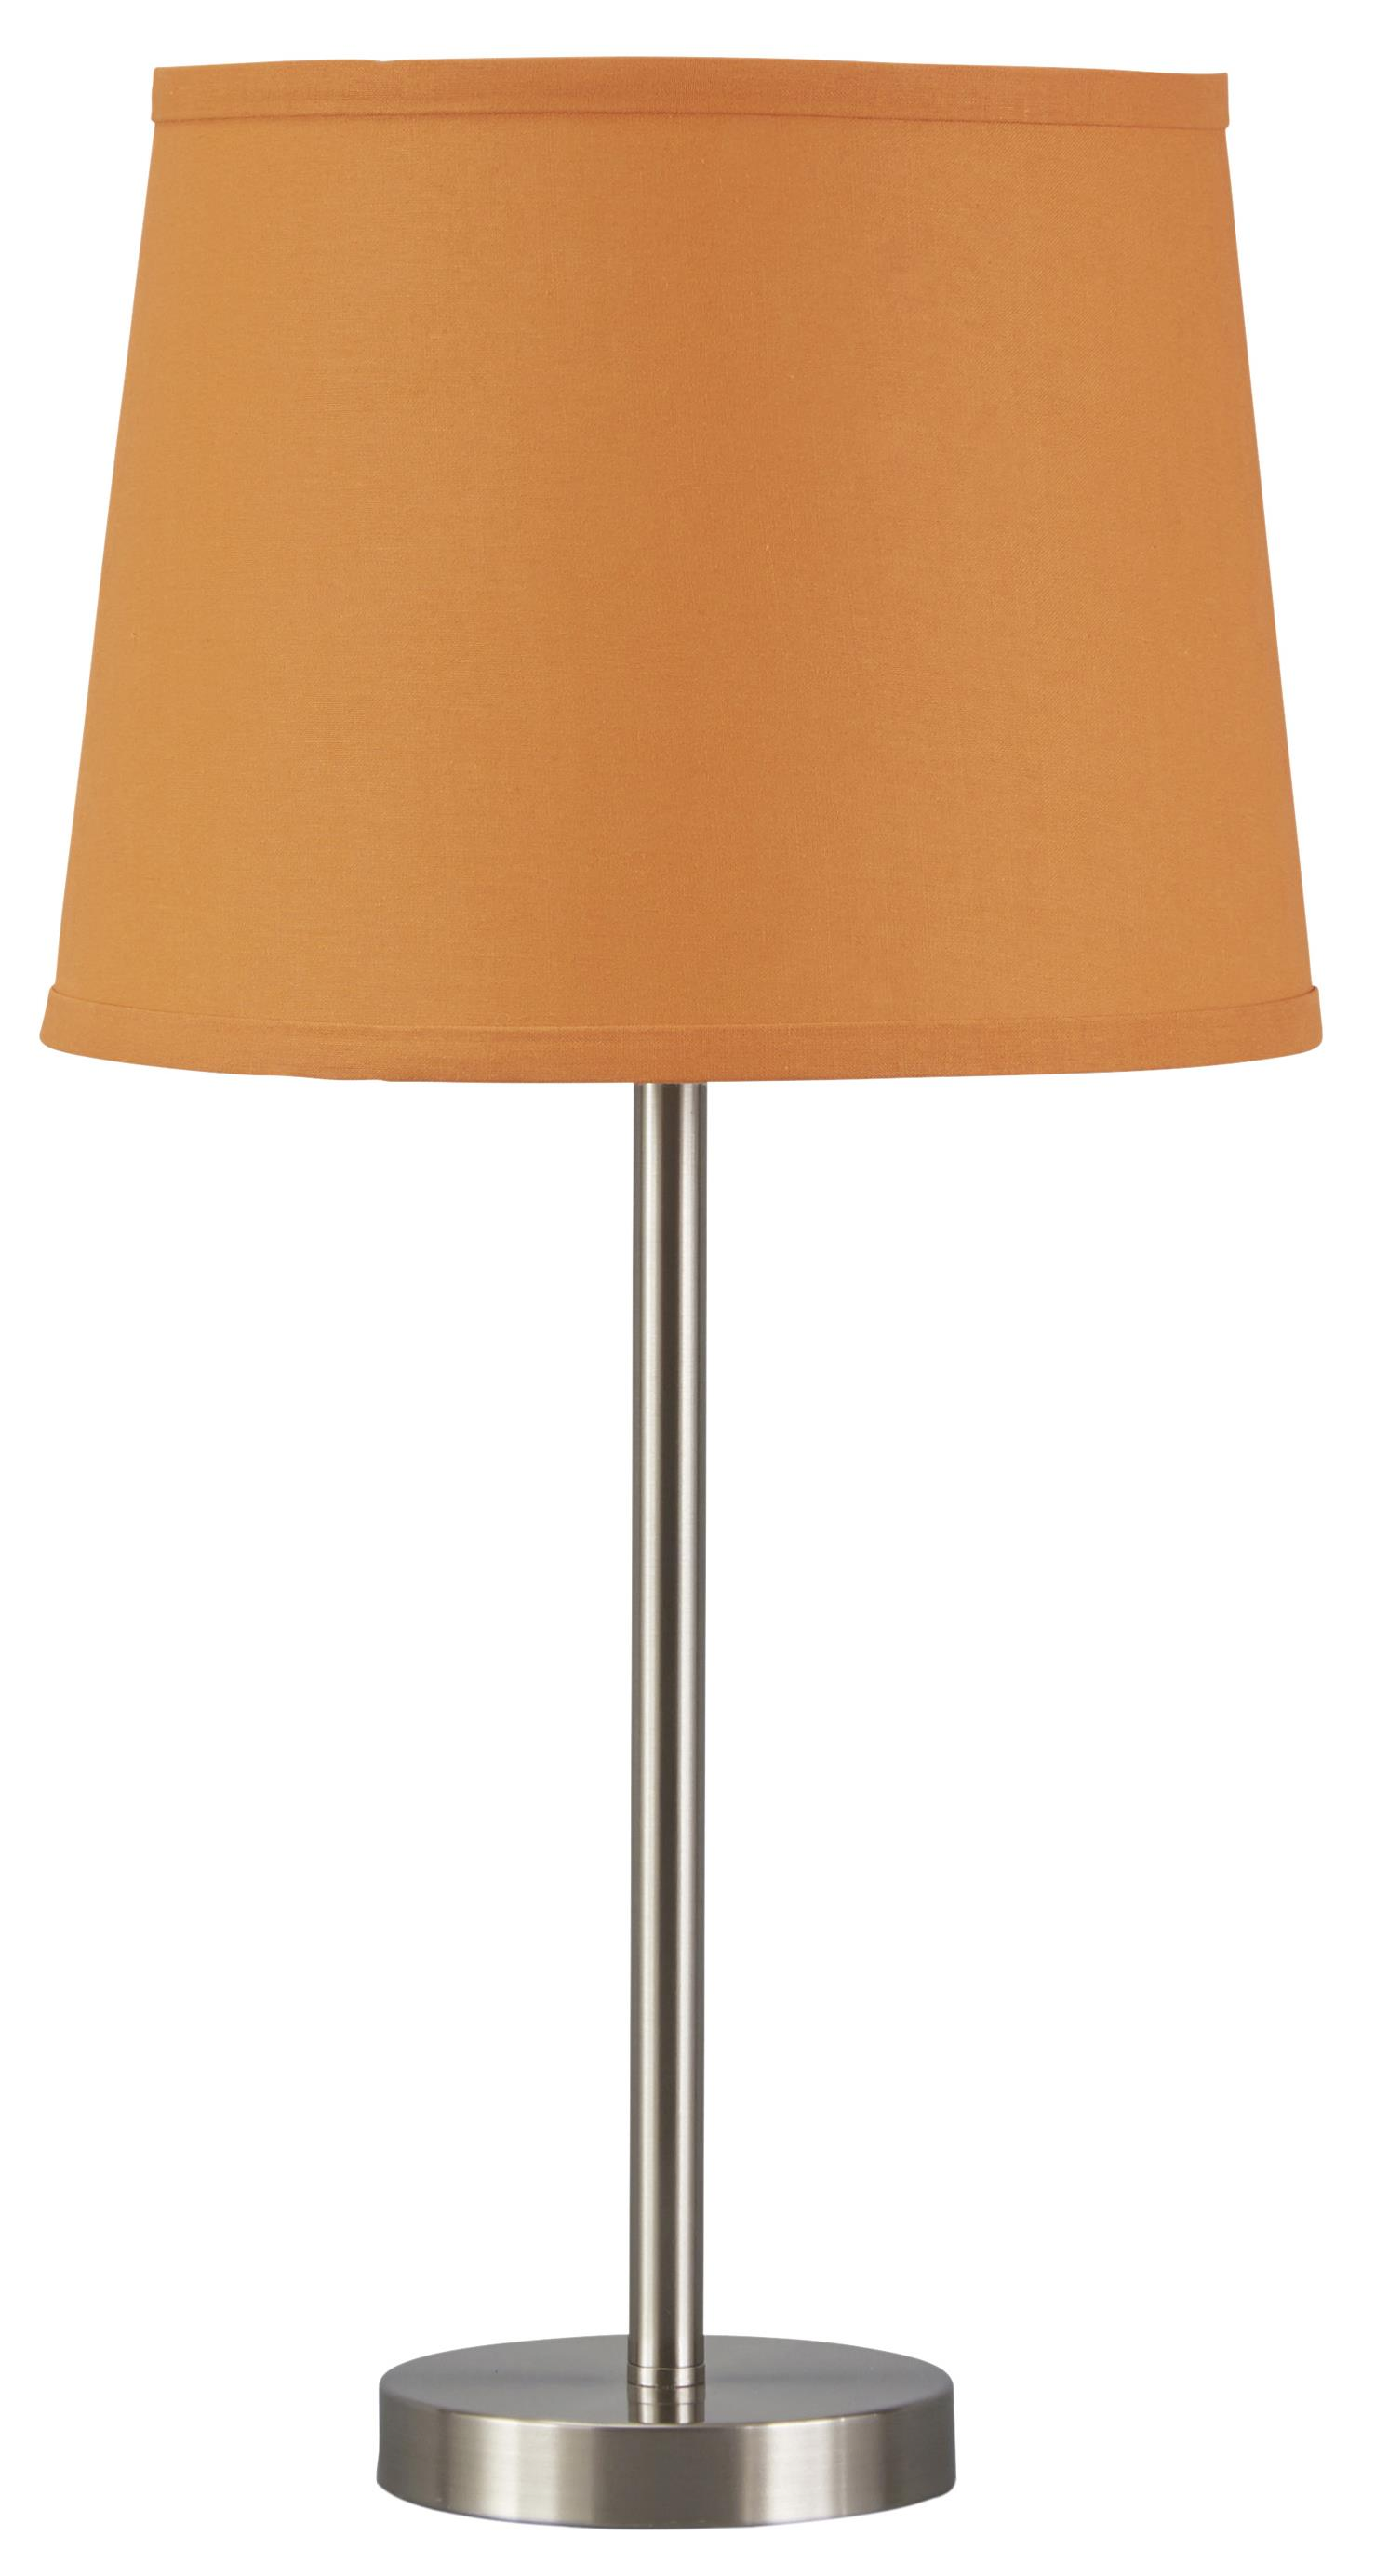 Signature Design by Ashley Lamps - Contemporary Shonie Metal Table Lamp - Item Number: L857534